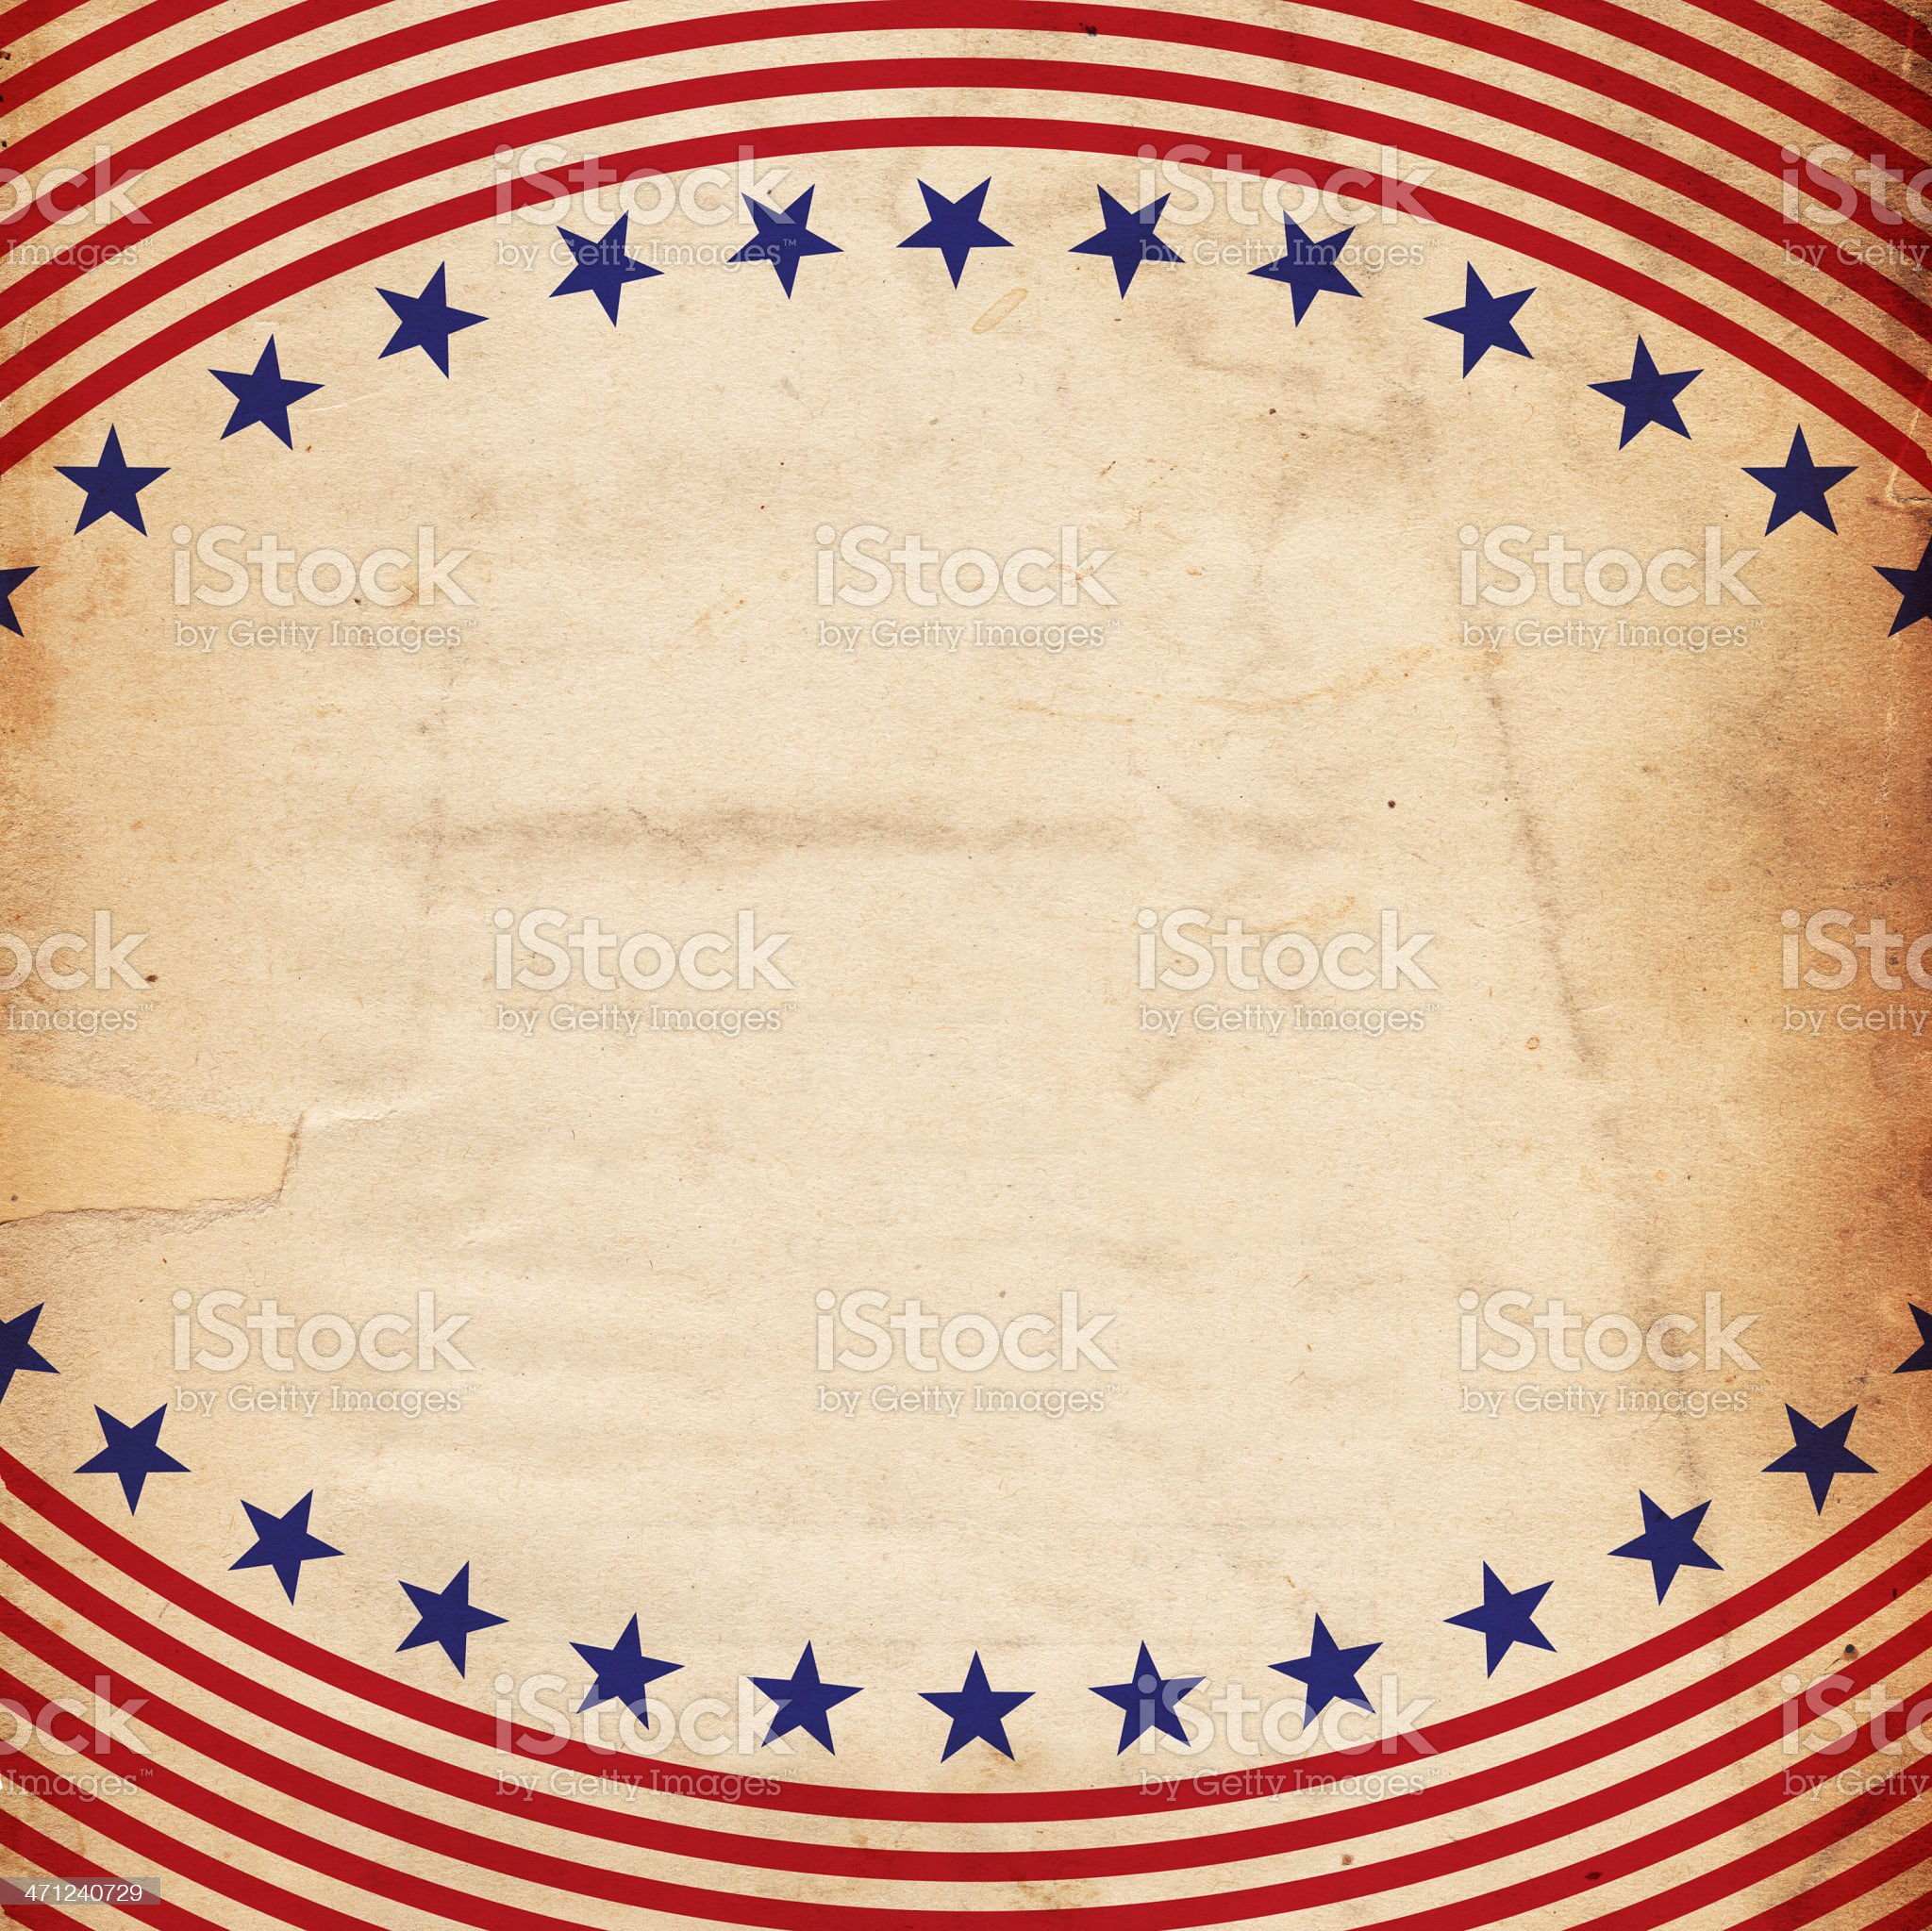 Stationary with patriotic Stars and Stripes print royalty-free stock photo